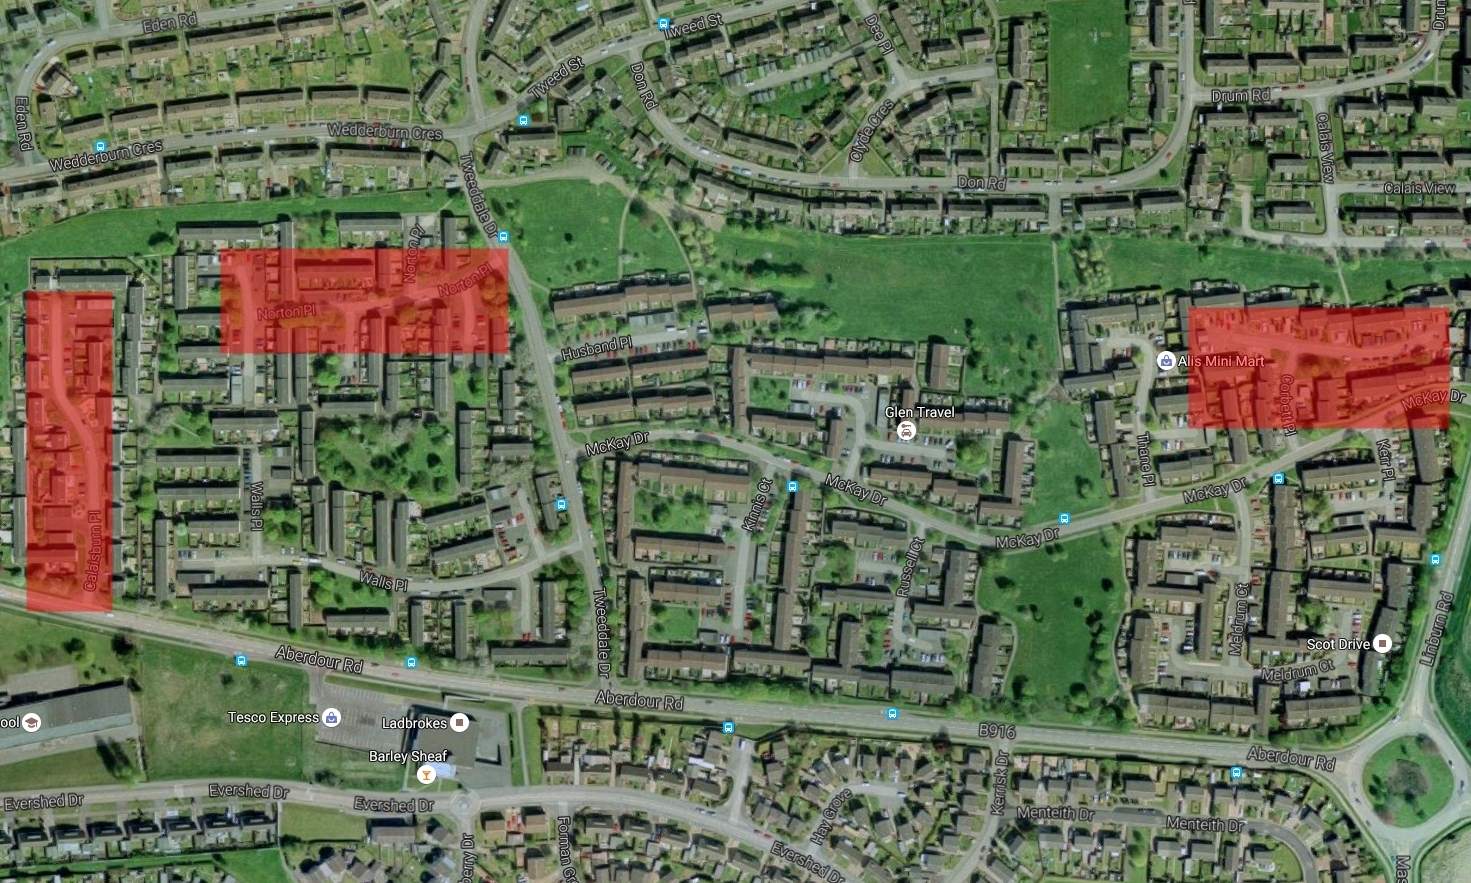 The incidents happened in  Calaisburn Place, Norton Place and Corbett Place (all highlighted in red).